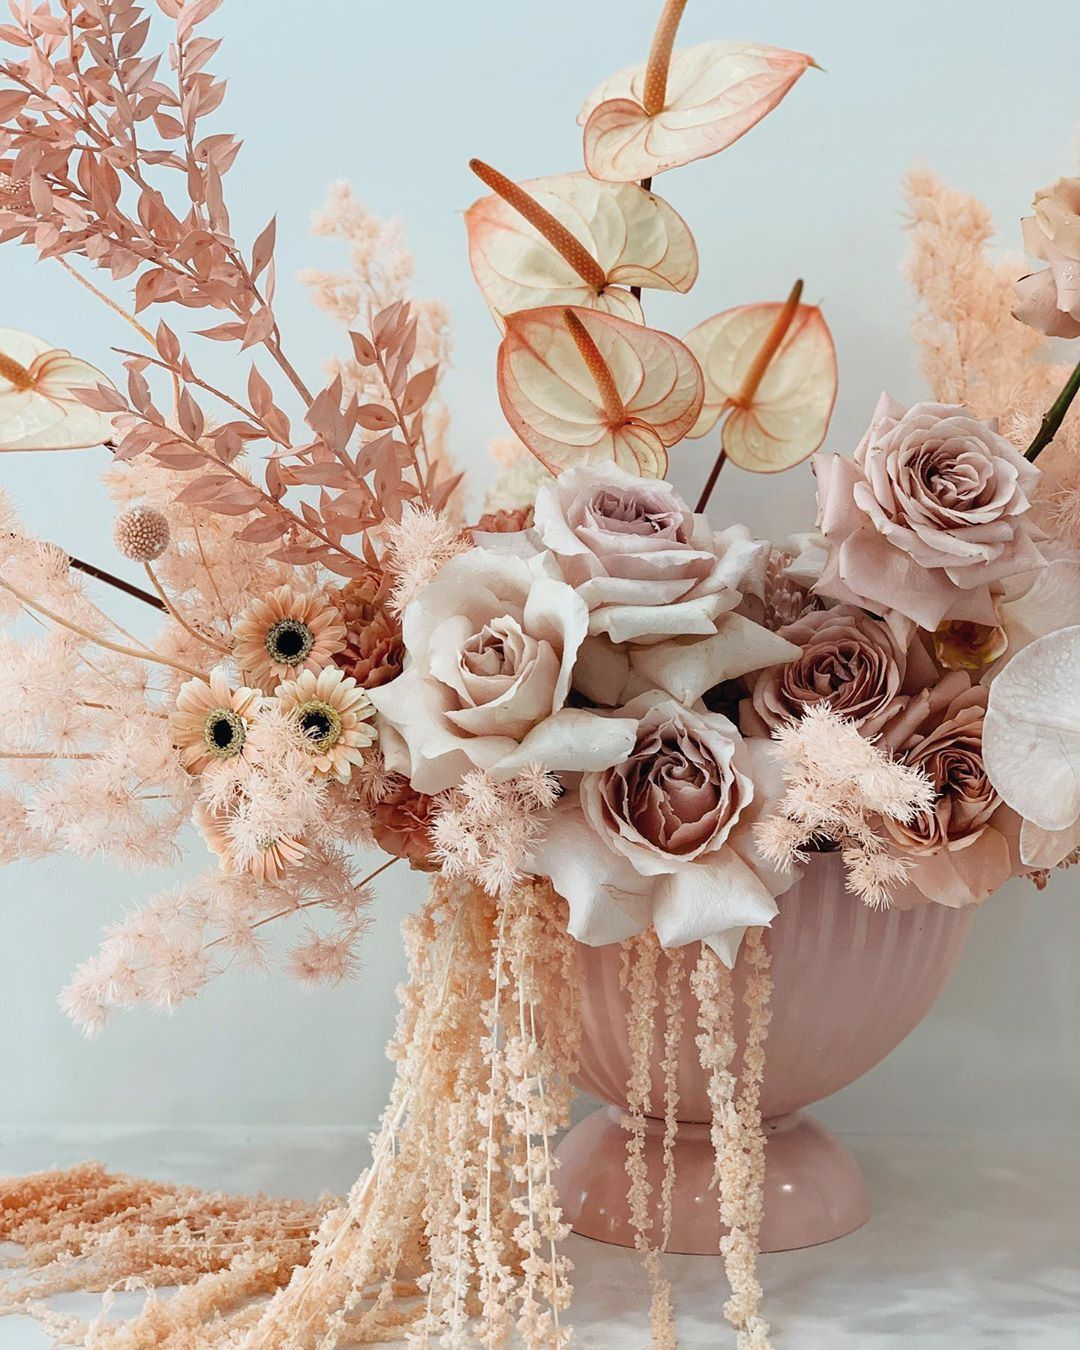 Floral Arrangement By Nikau Flora See More On The Lane In 2020 Dried Flower Arrangements Floral Arrangements Dried Floral